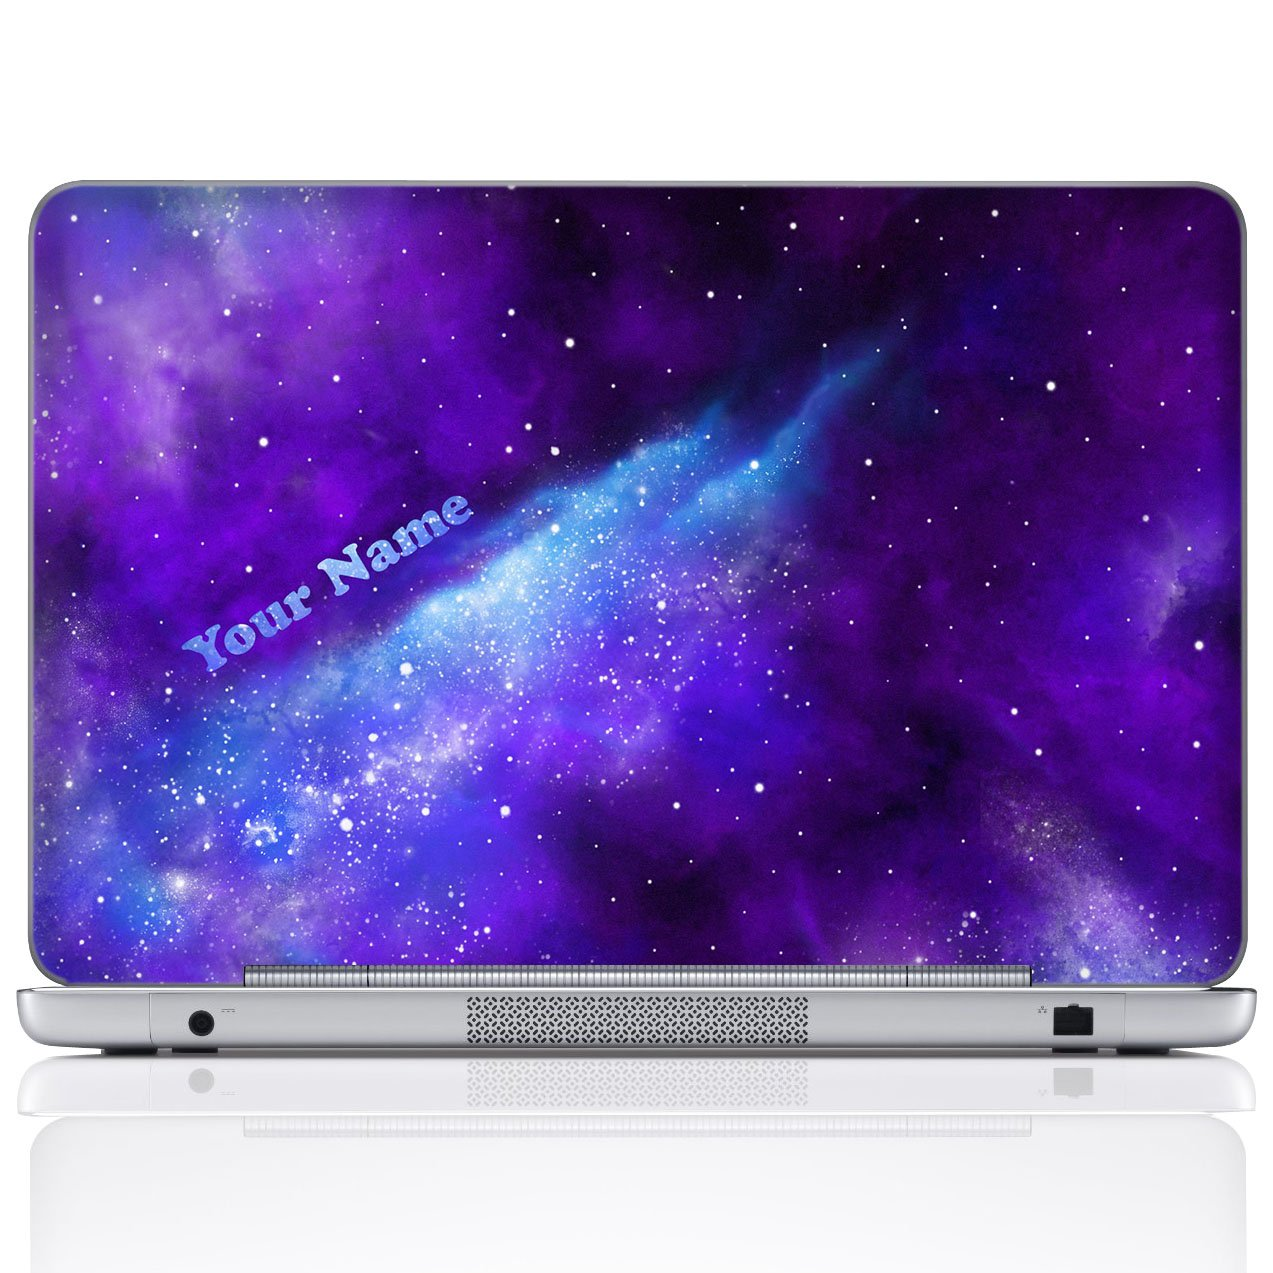 Meffort Inc Personalized Laptop Notebook Notebook Skin Sticker Cover Art Decal, Customize Your Name (10 Inch, Galaxy Universe)